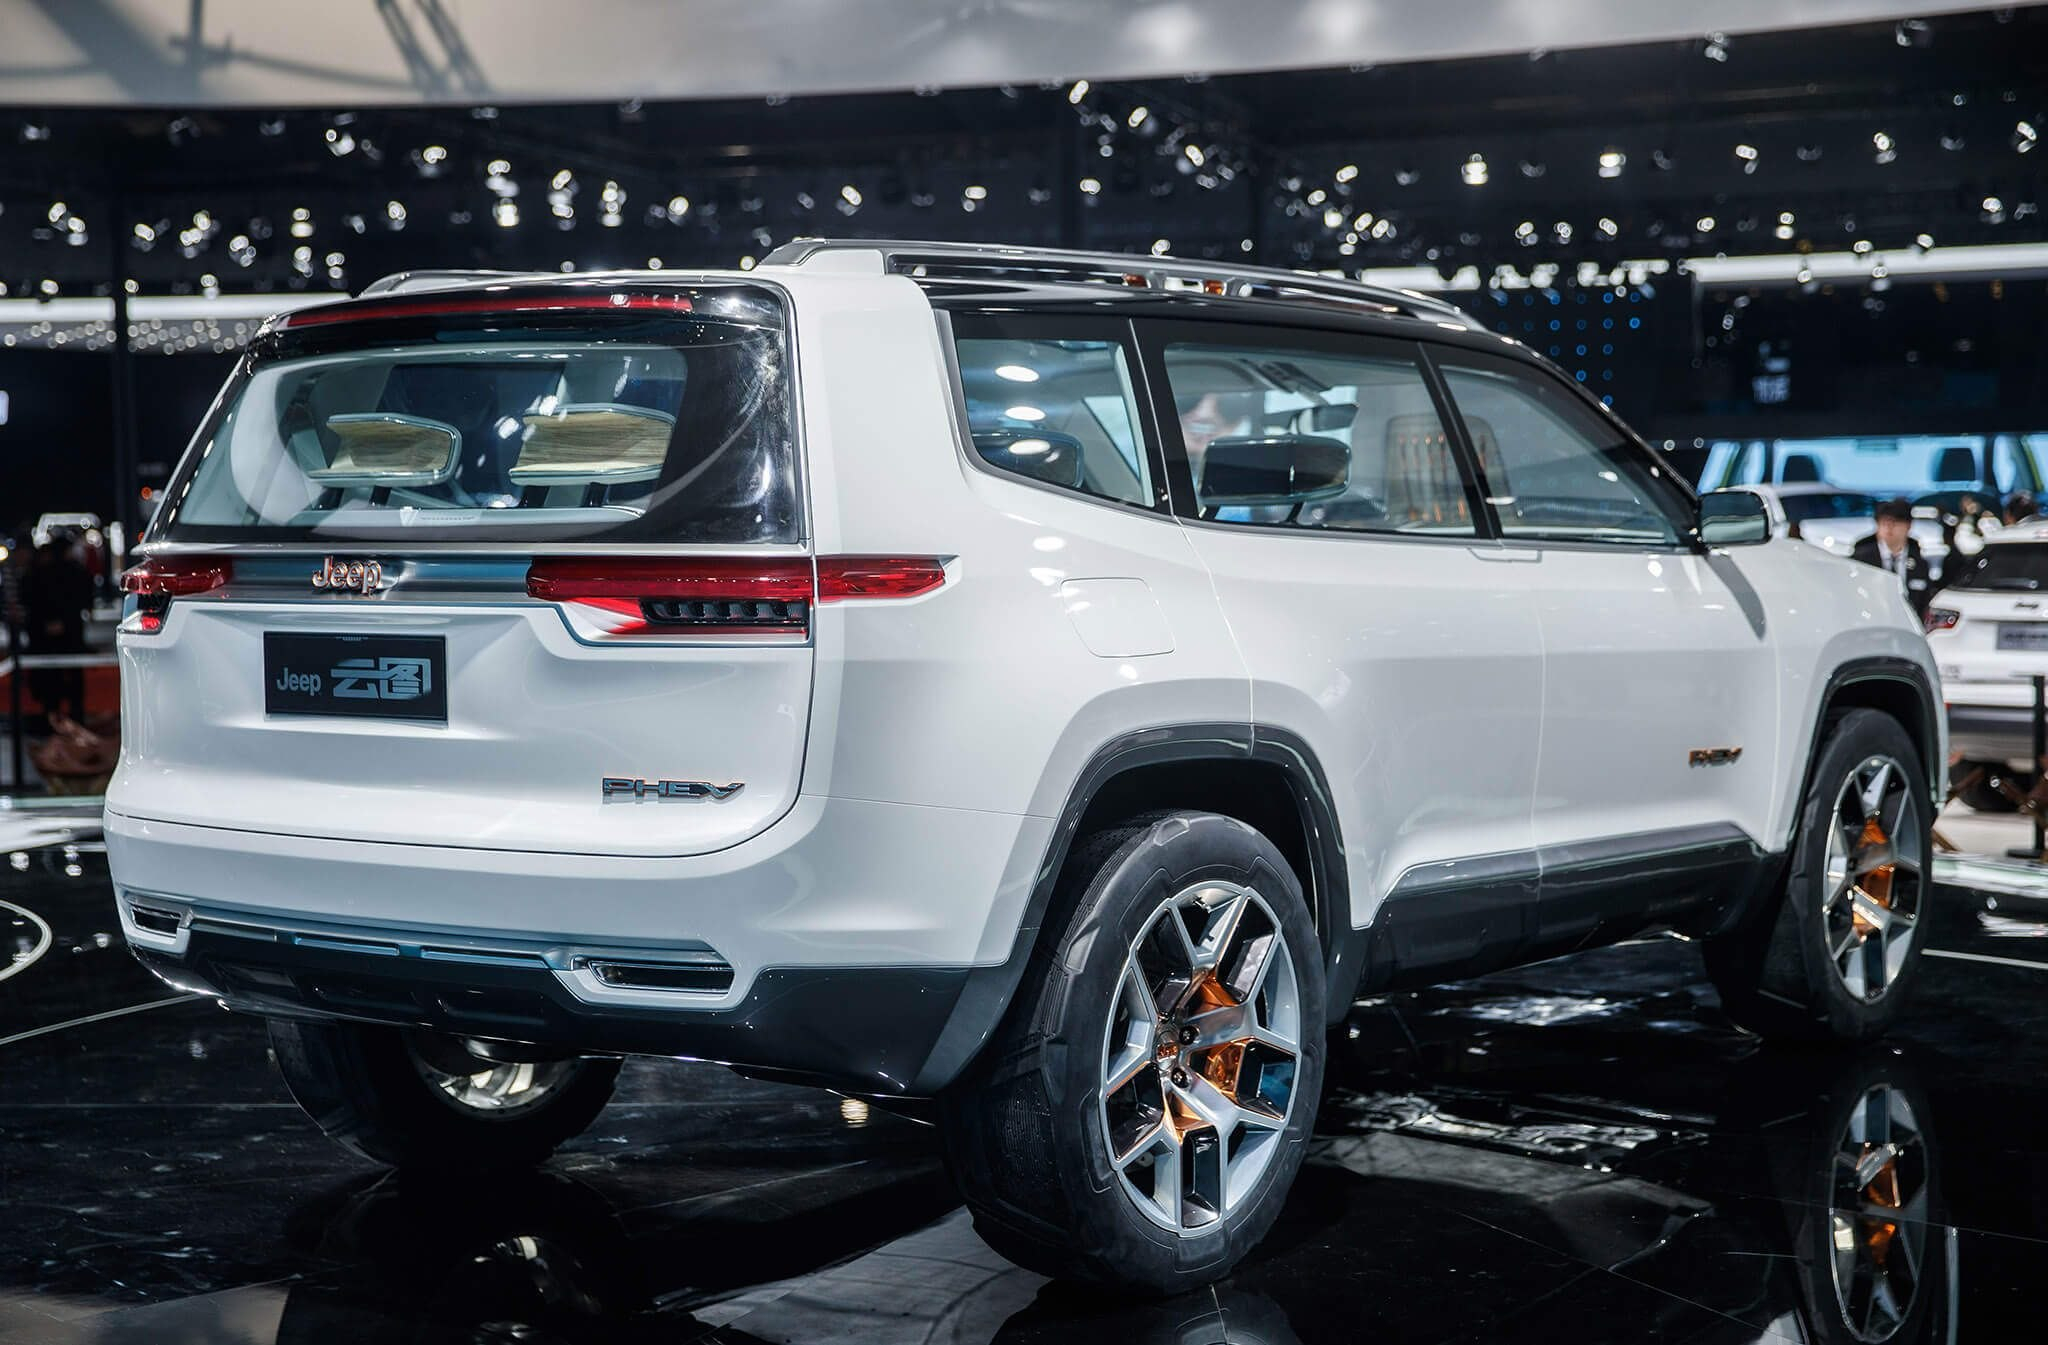 50 All New 2020 Jeep Grand Cherokee Srt8 Price Design and Review